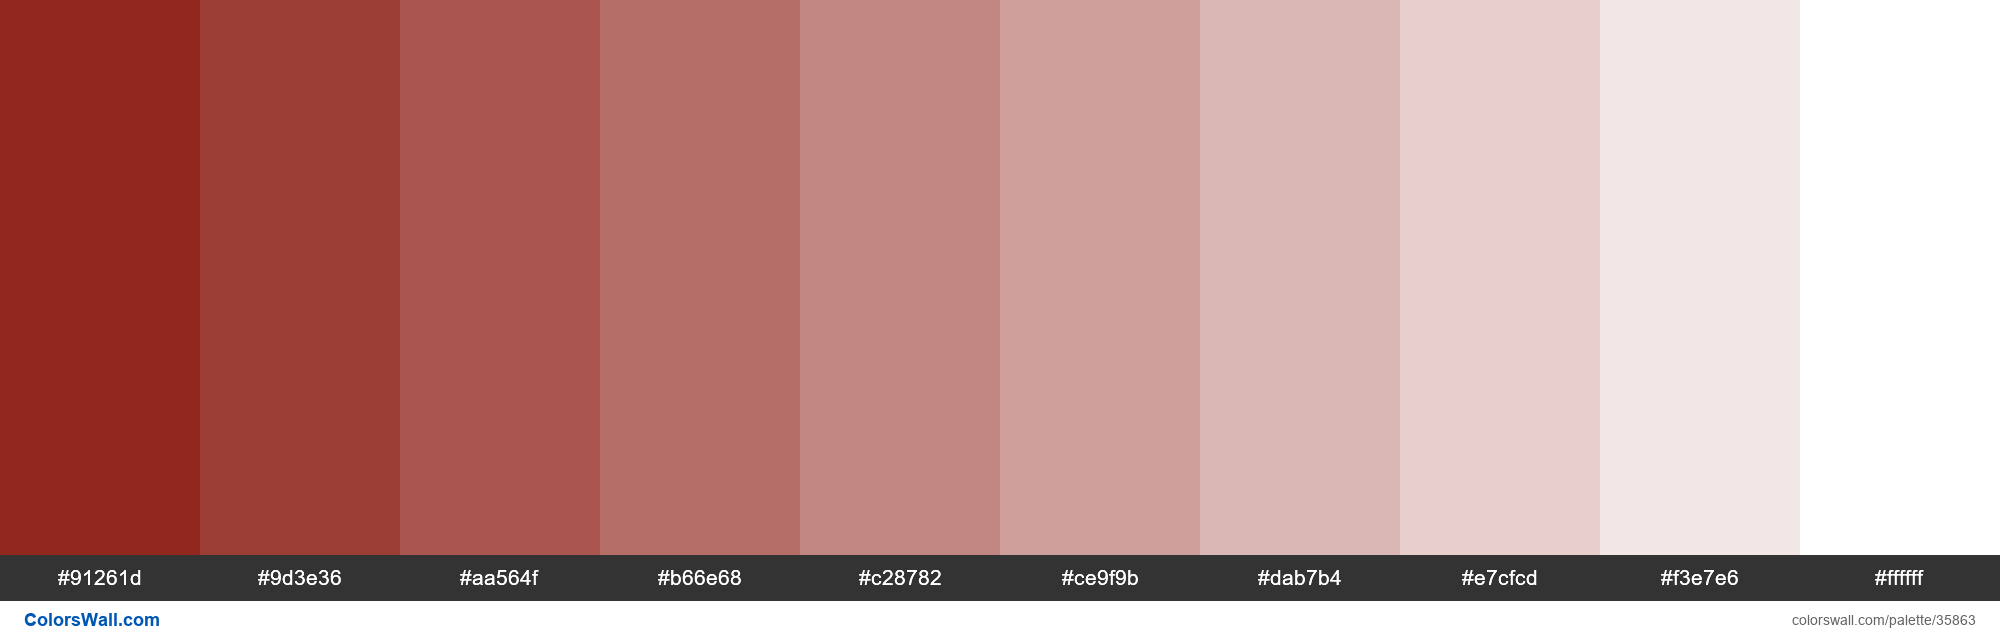 Tints XKCD Color indian red #850e04 hex - #35863